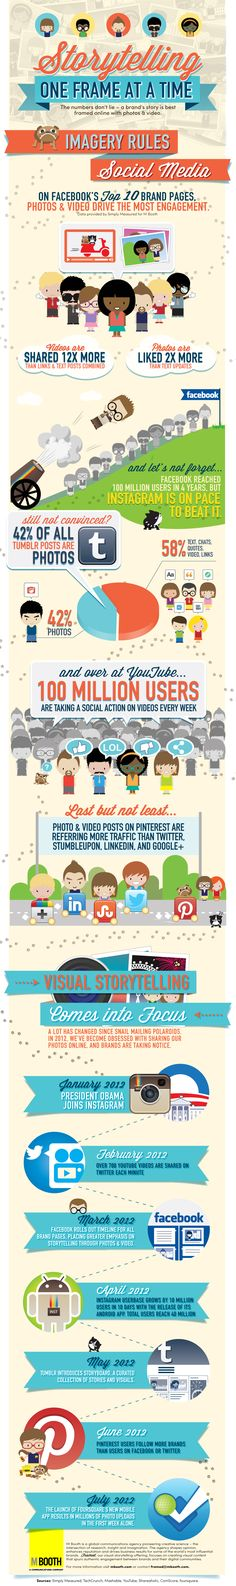 What better way to discuss the impact of photos on Facebook and other social networks than with a colorful infographic? Global communications company